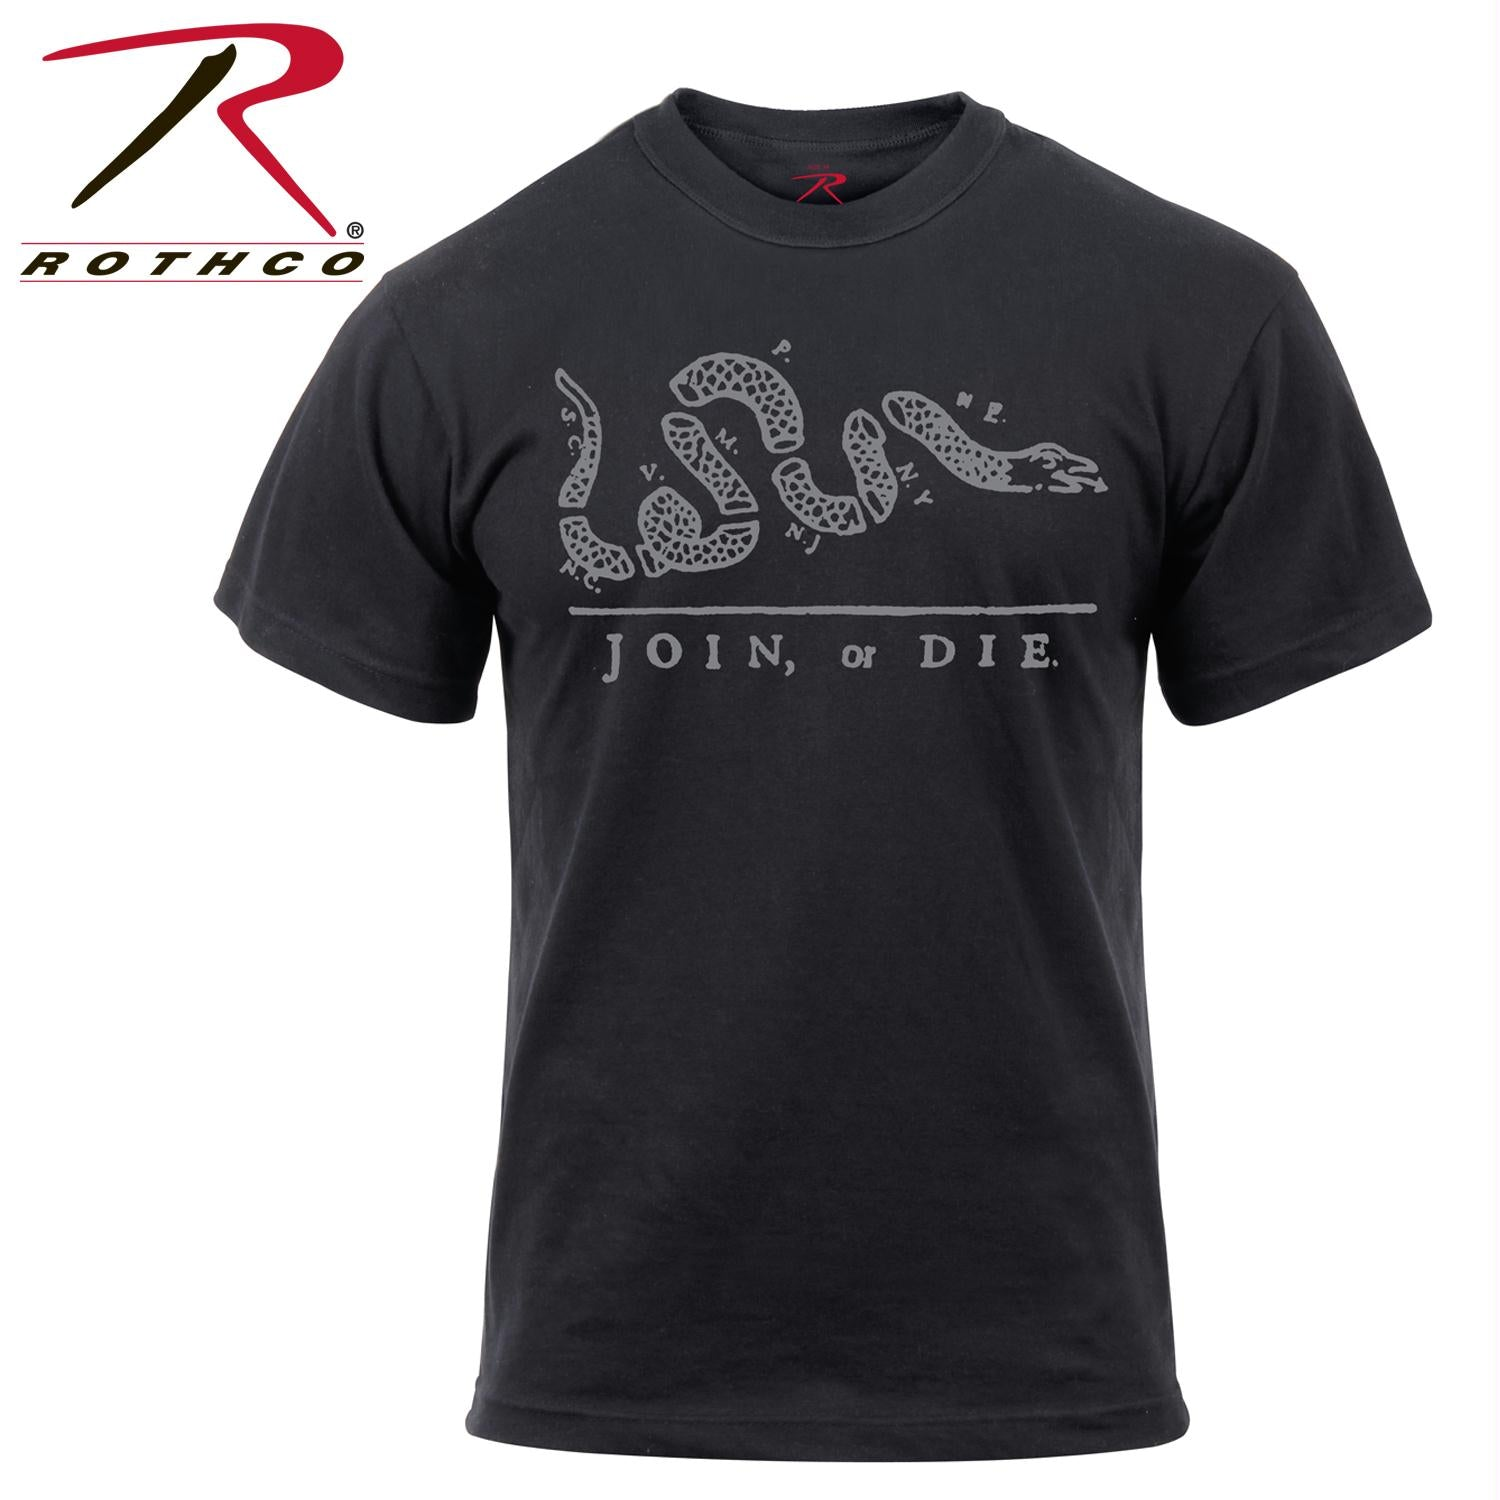 Rothco 'Join or Die' T-Shirt - L